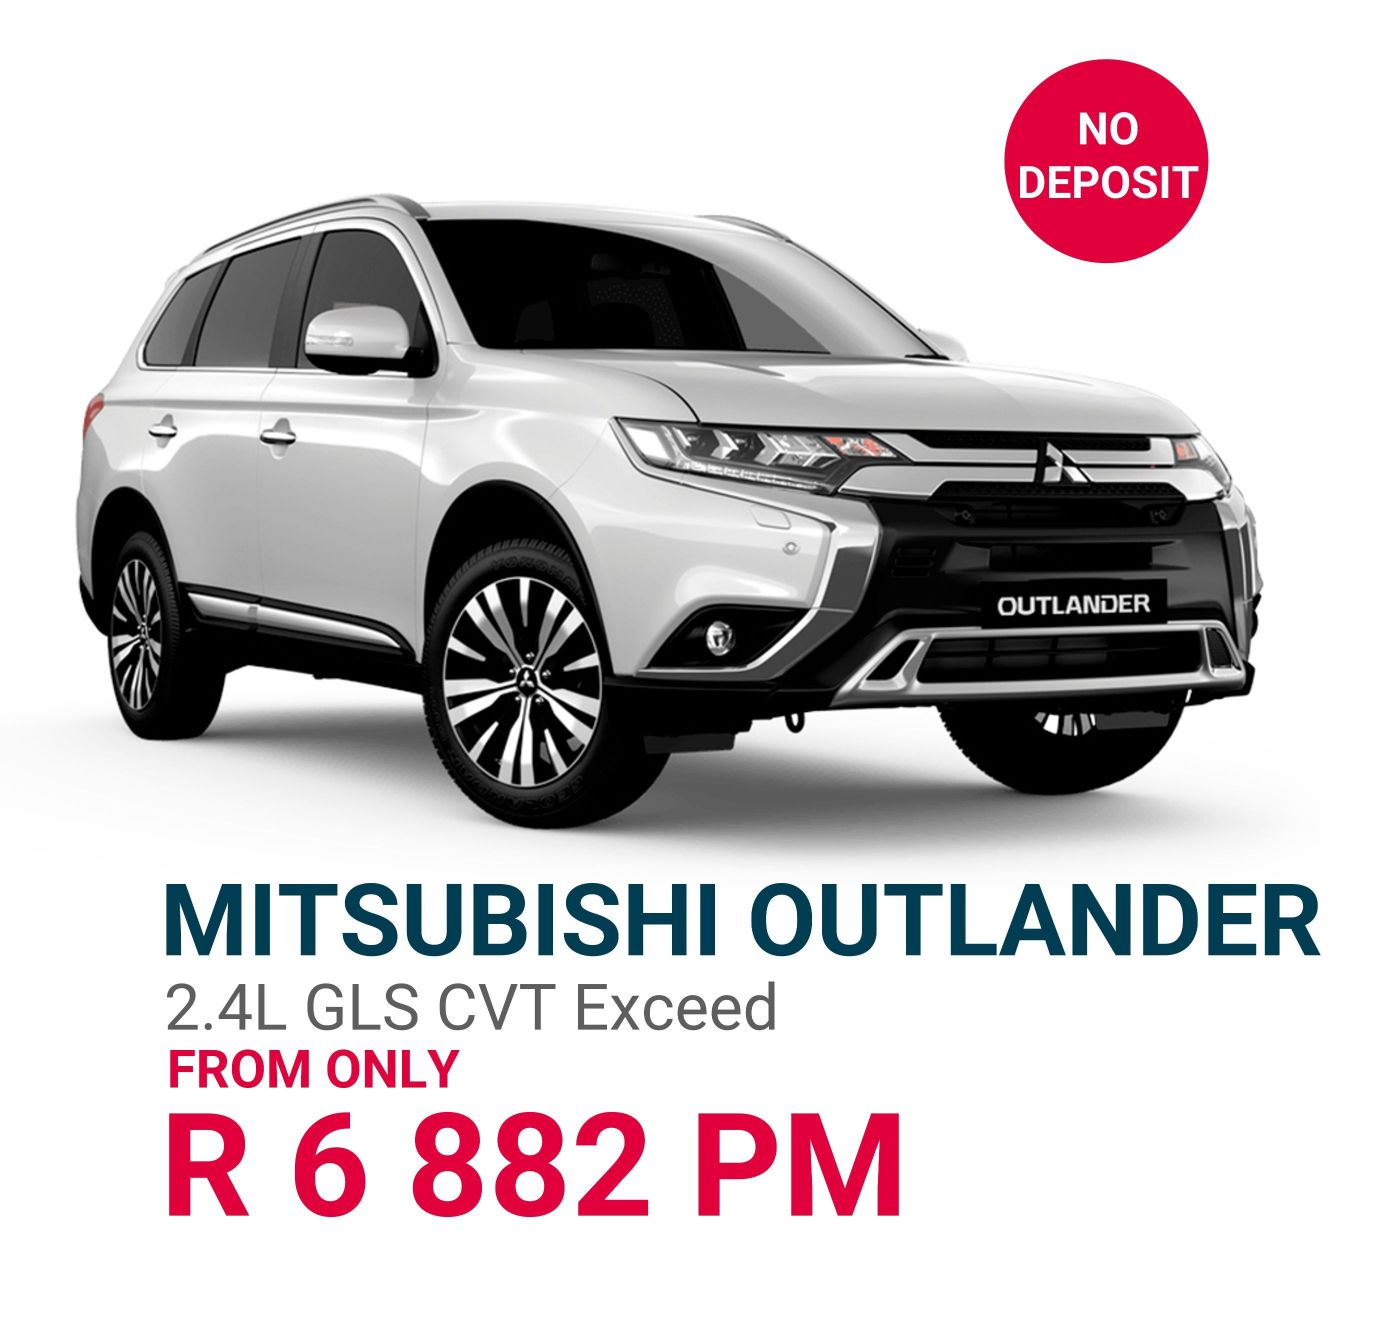 mitsubishi-outlander-from-only-r6-882pm